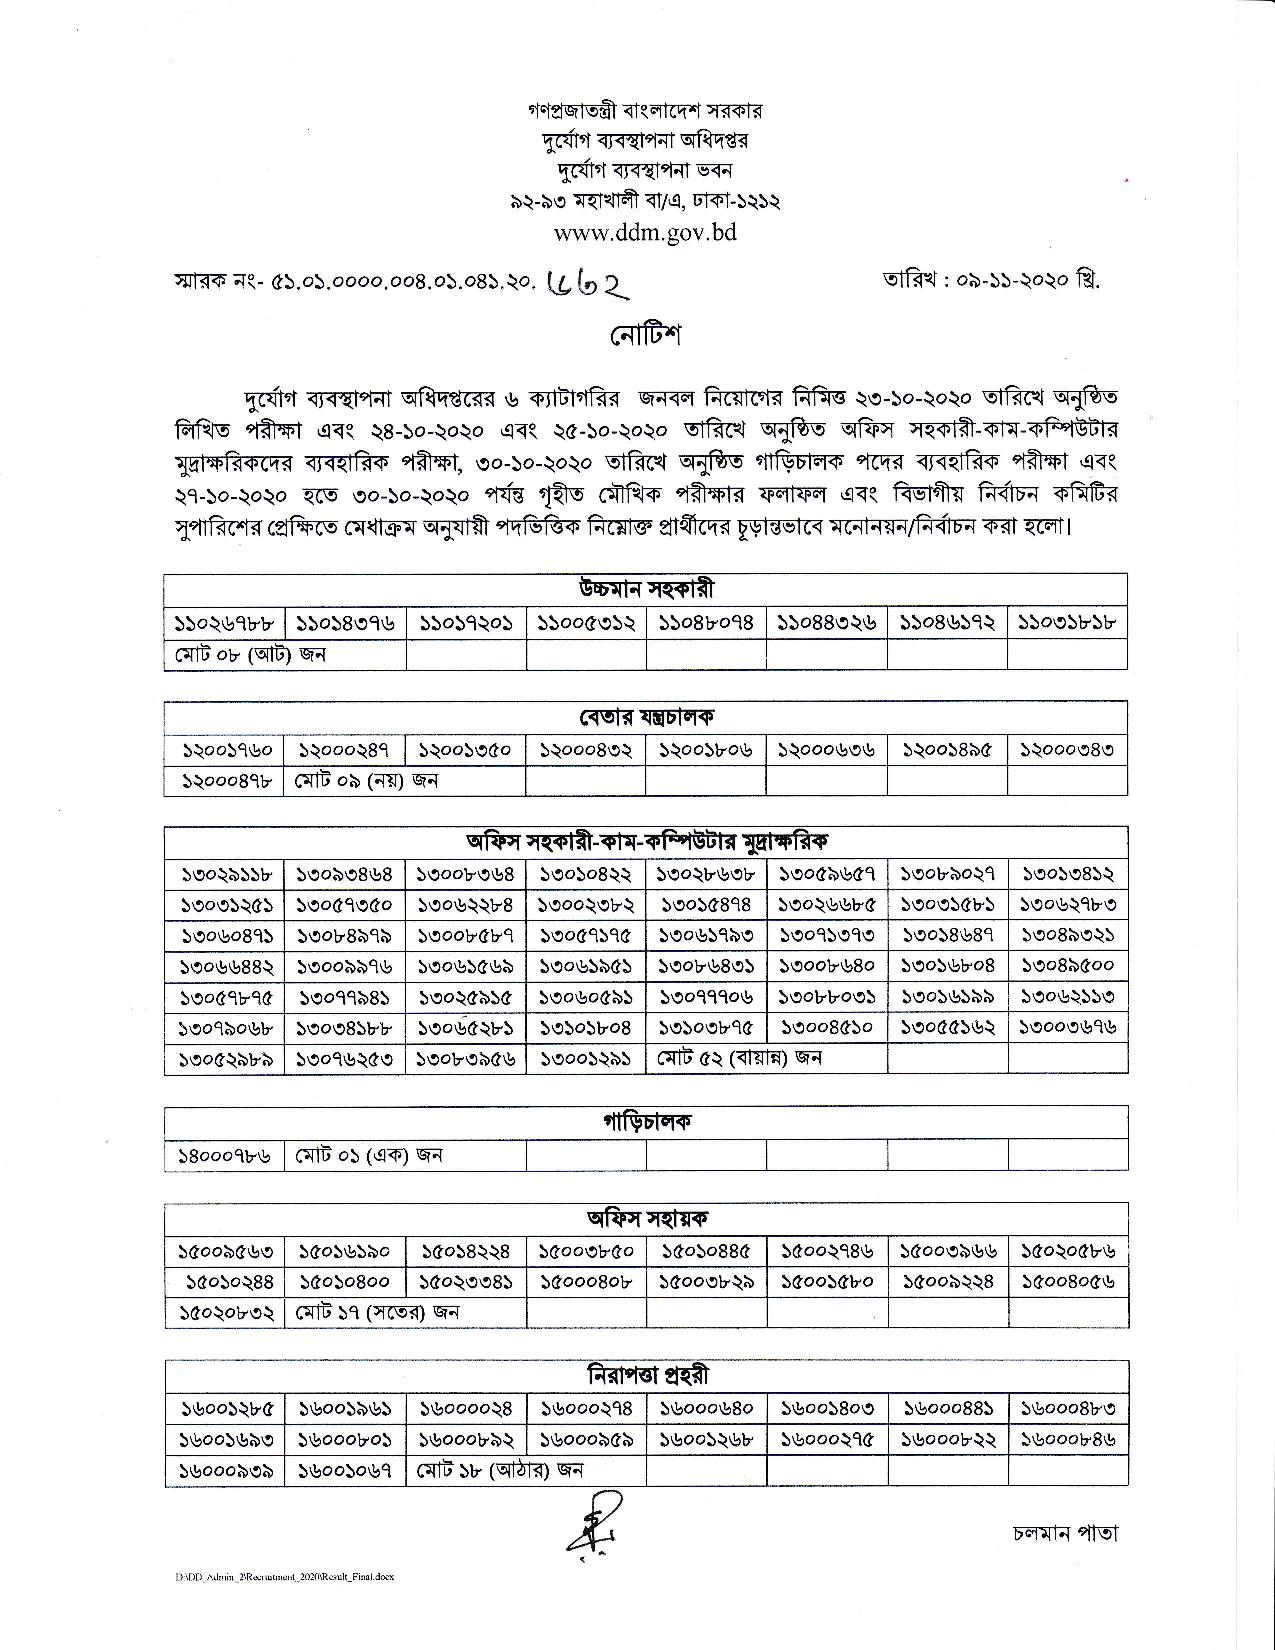 dddm job exam result